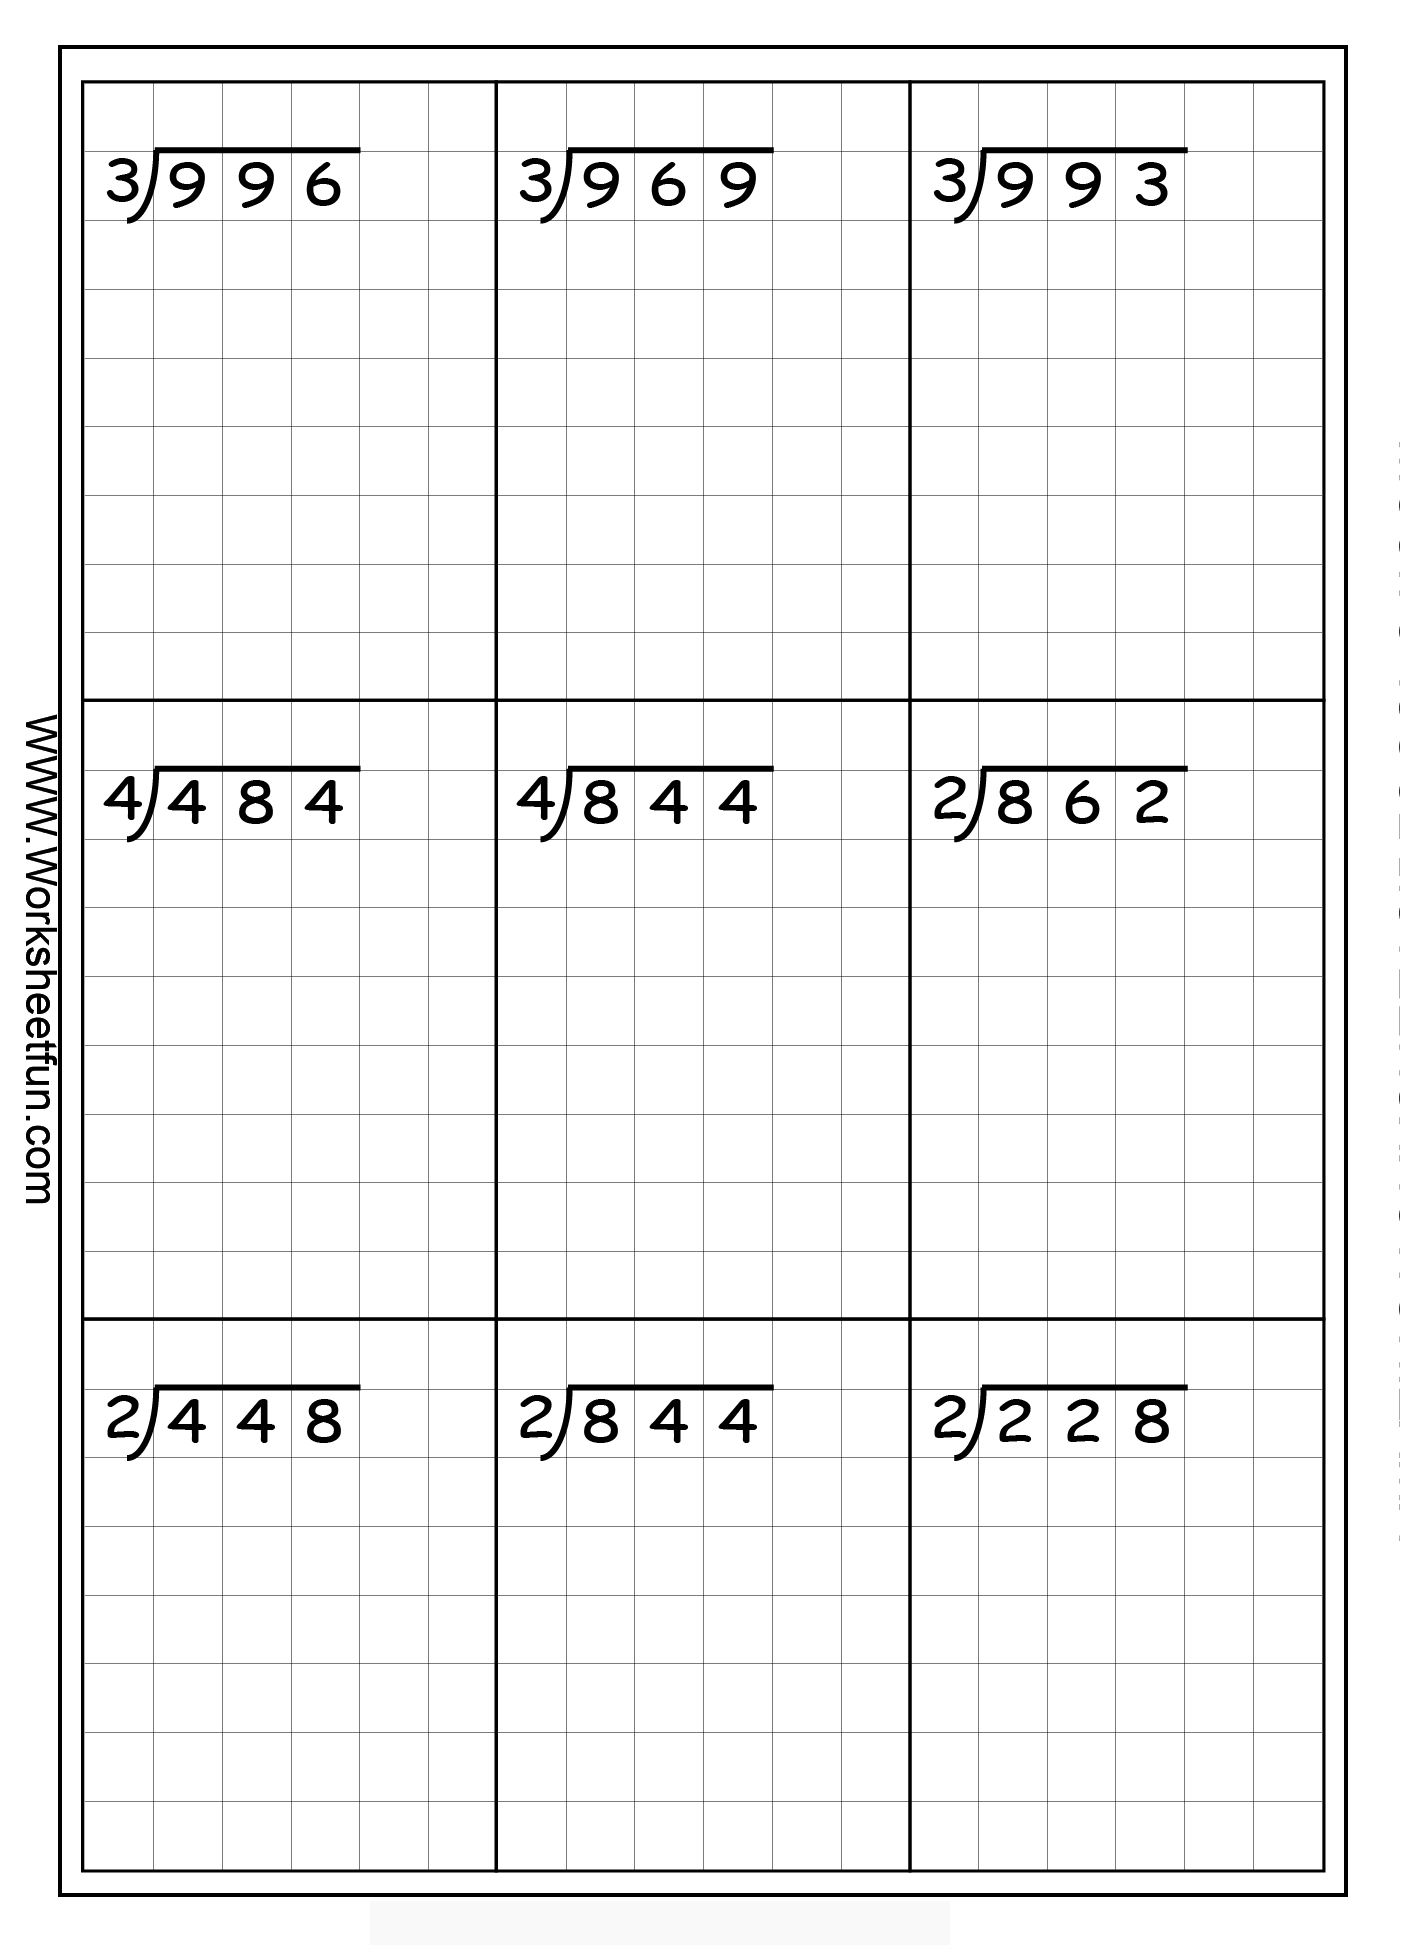 Long Division 3 Digits By 1 Digit Without Remainders